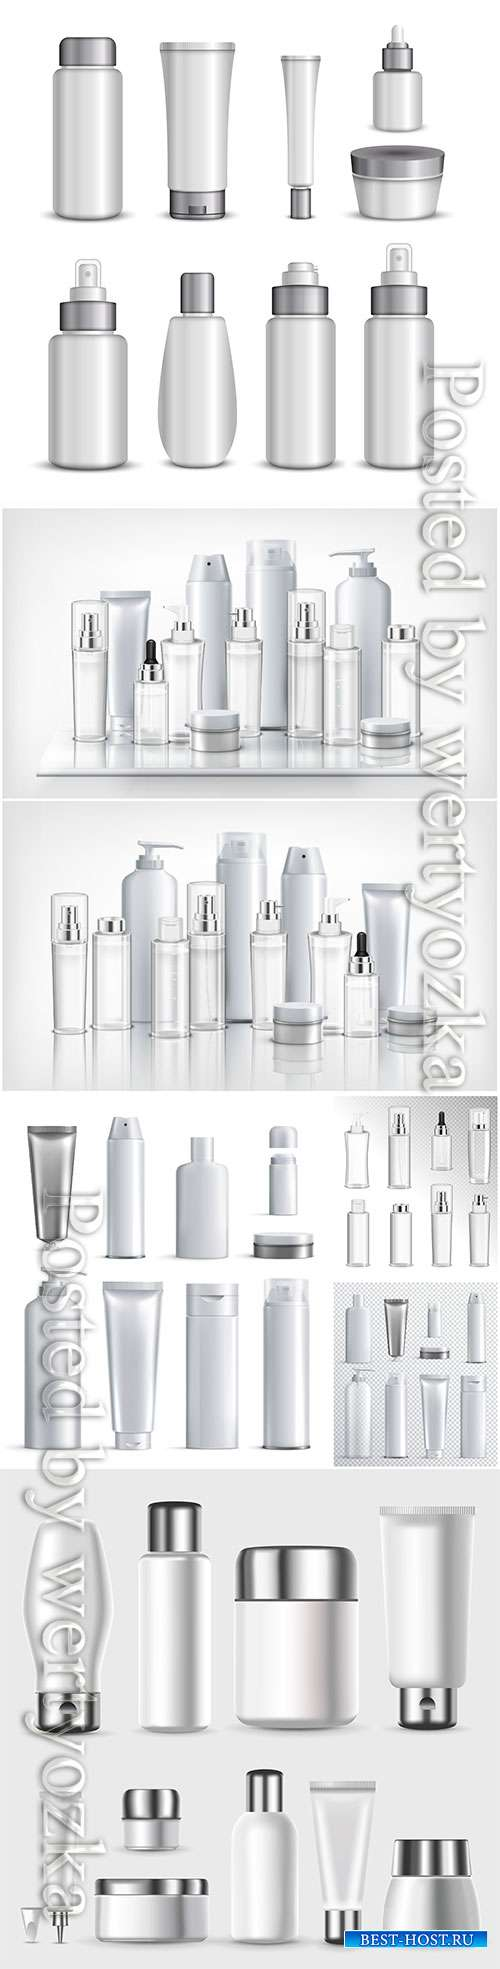 Set of cosmetics plastic bottles